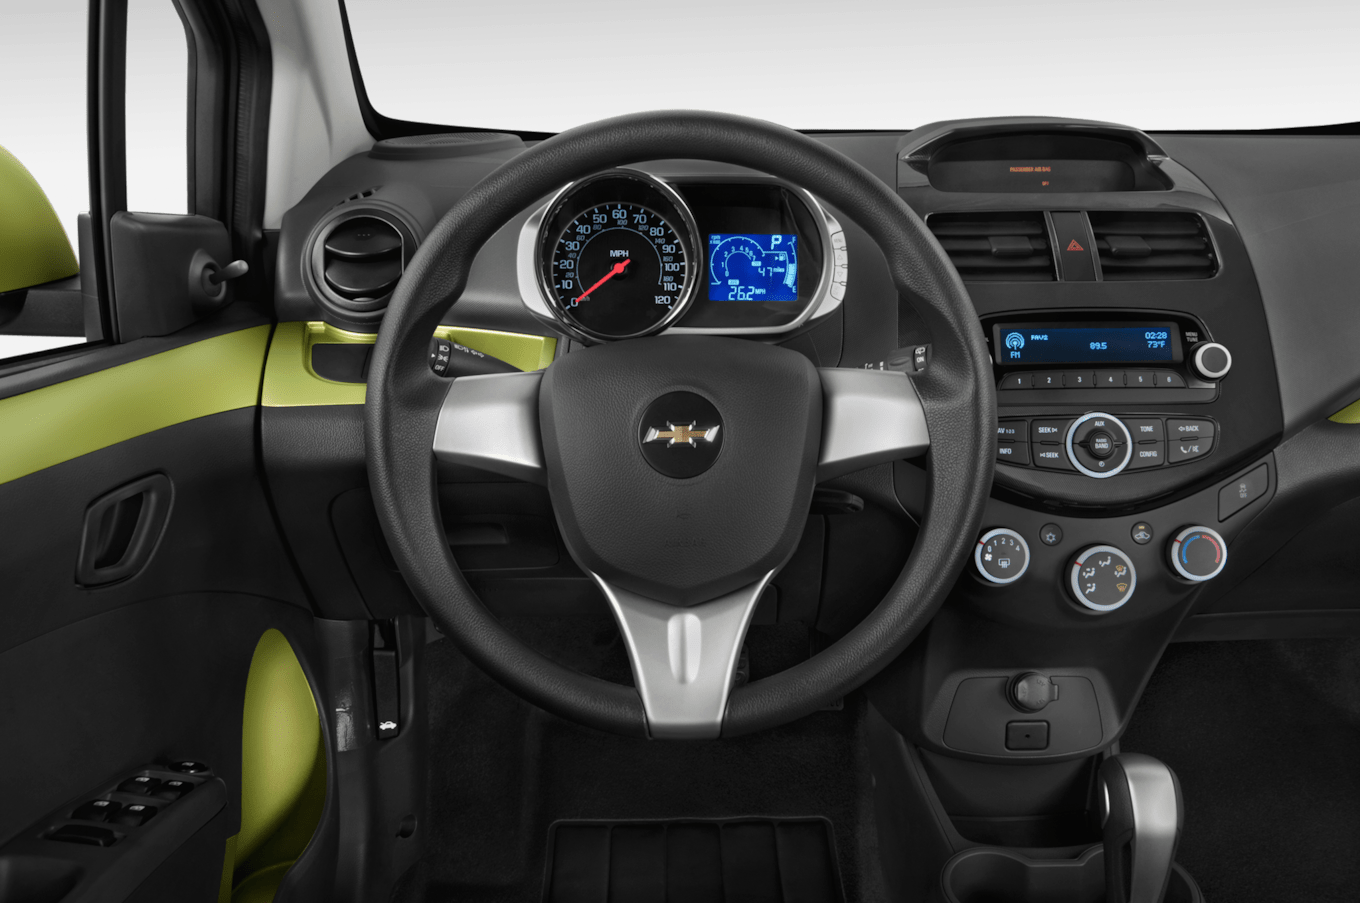 2012 Chevy Sonic Radio Wiring Diagram 2015 Chevrolet Spark Reviews Research Spark Prices